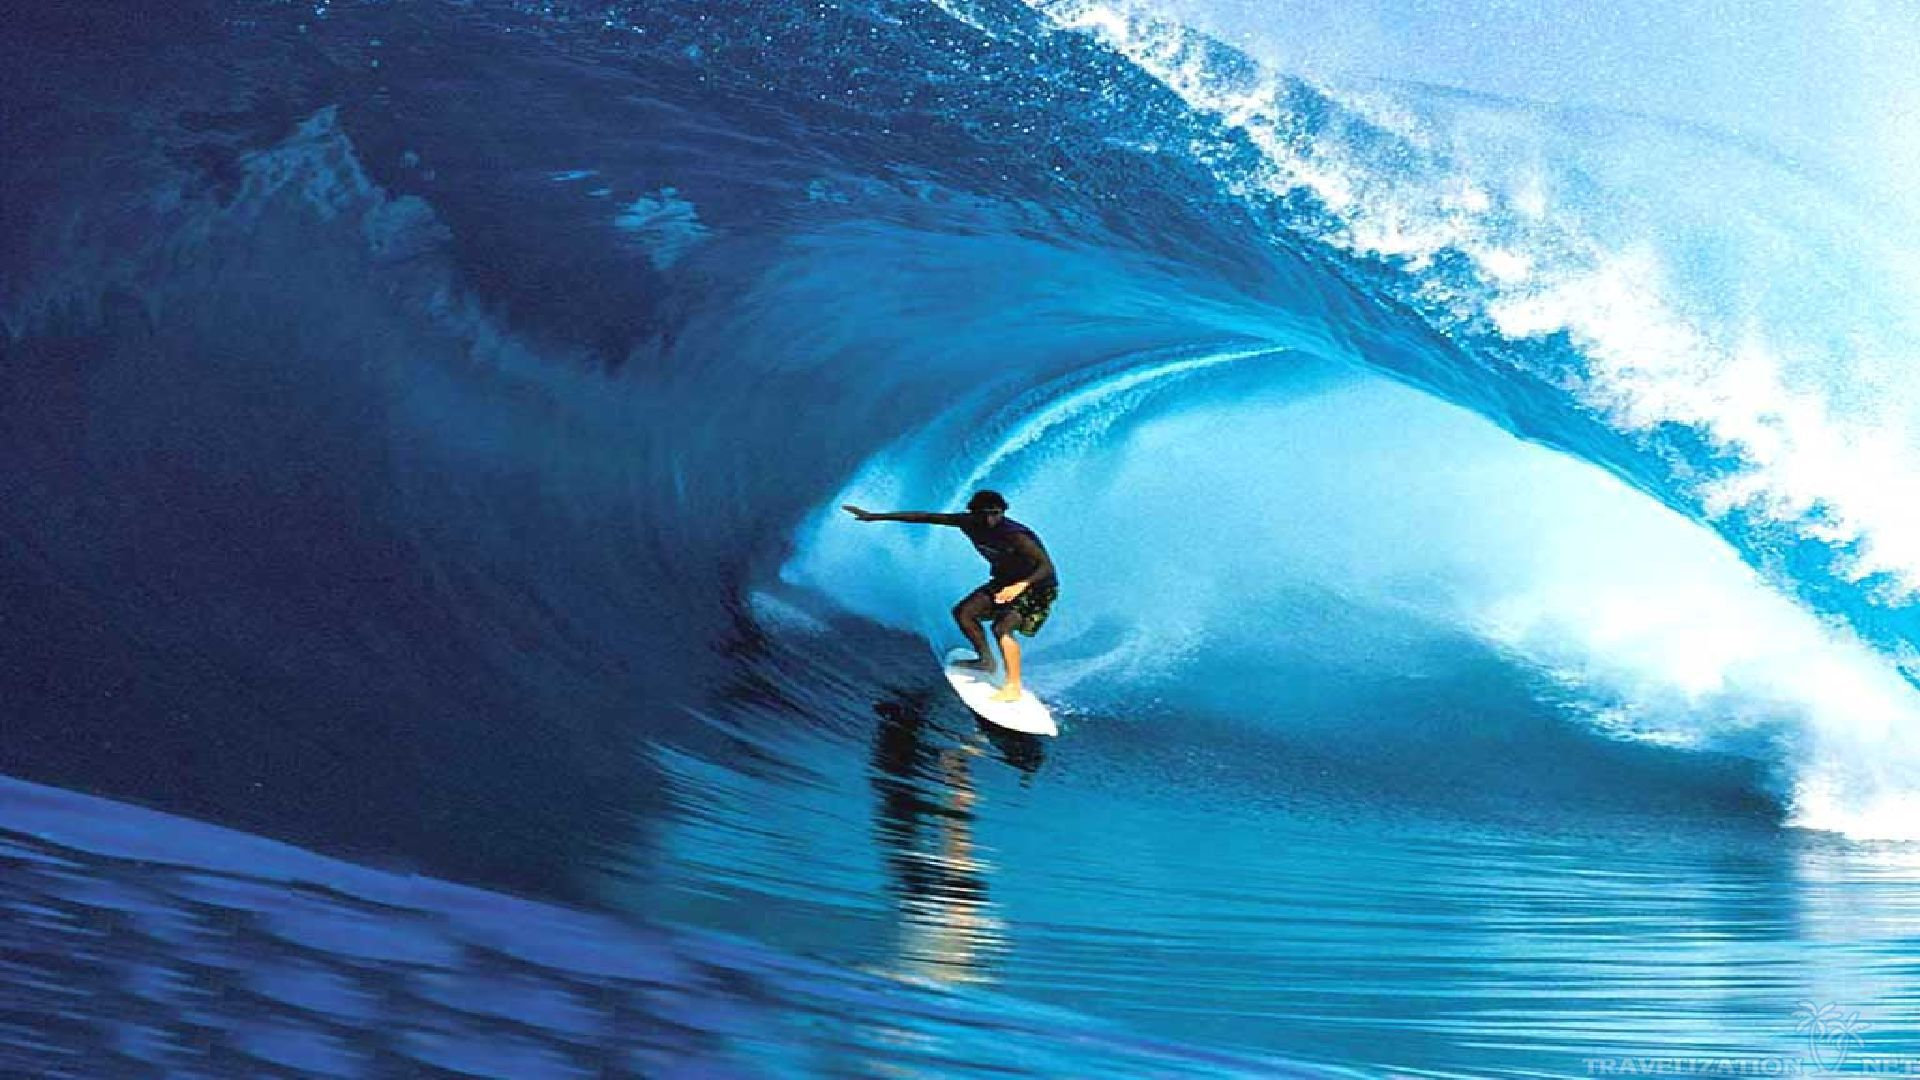 big wave surfing wallpapers 1920x1080 1920x1080